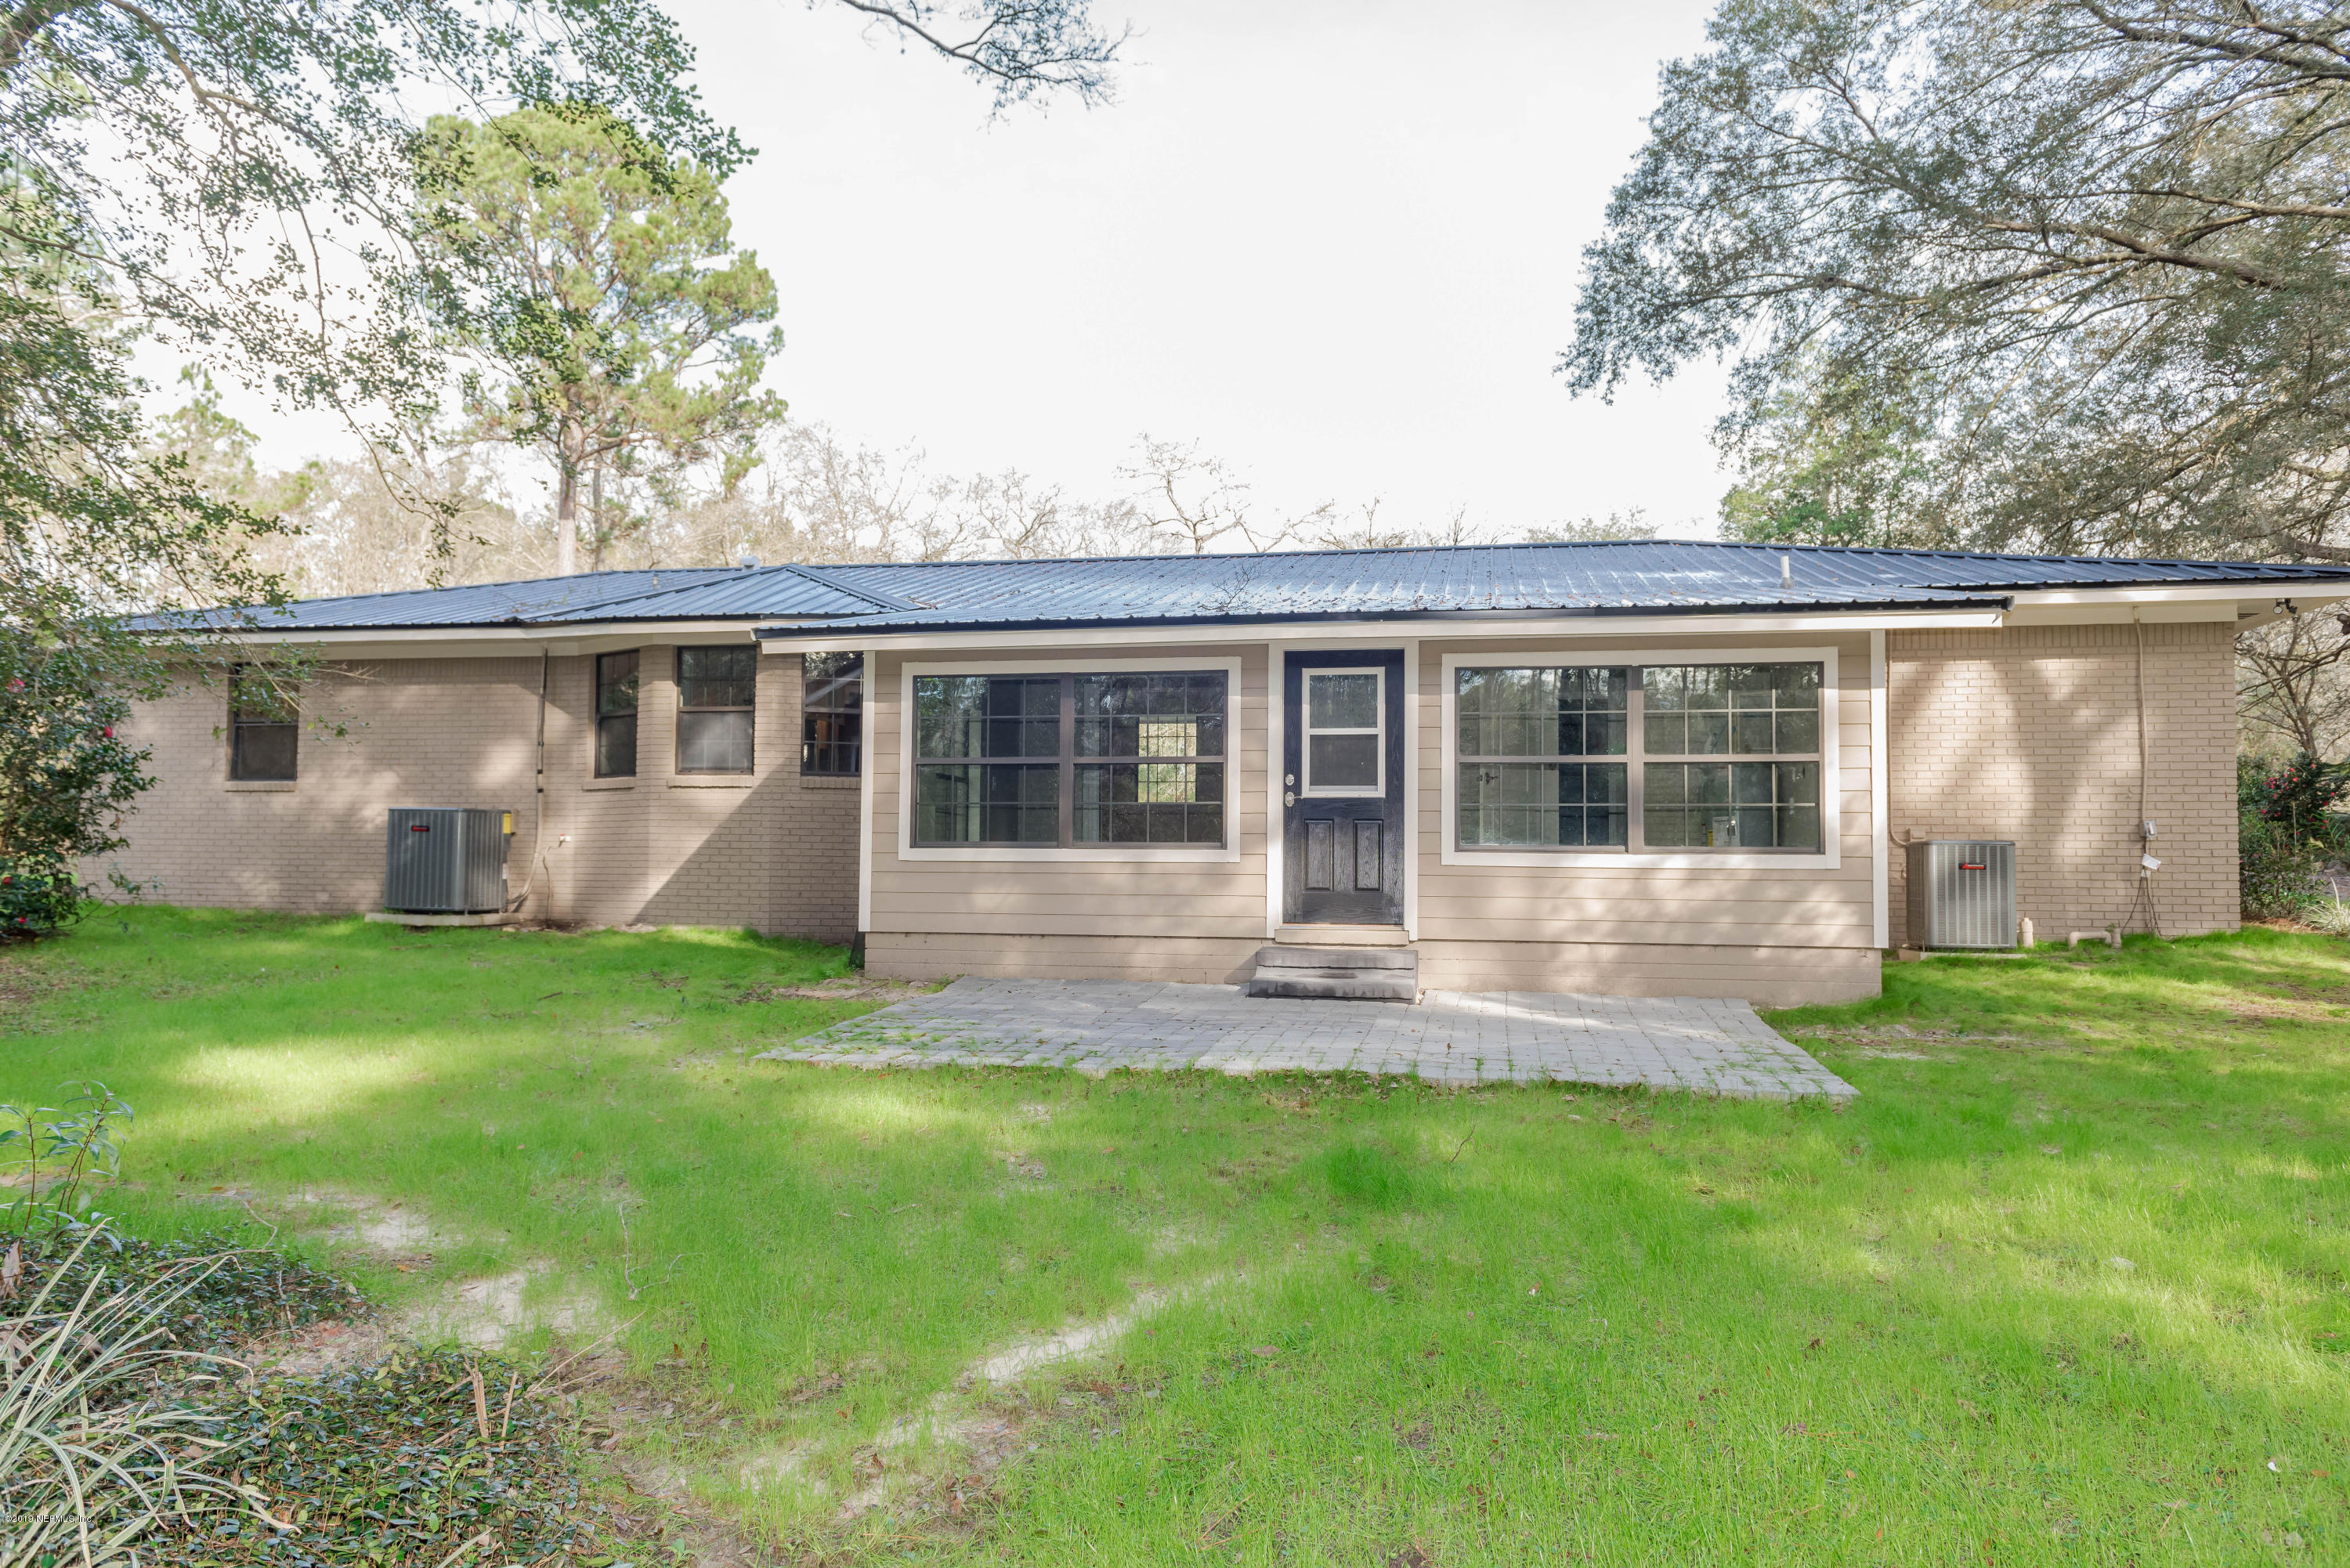 7589 YELLOW PINE, MACCLENNY, FLORIDA 32040, 4 Bedrooms Bedrooms, ,3 BathroomsBathrooms,Residential - single family,For sale,YELLOW PINE,974072